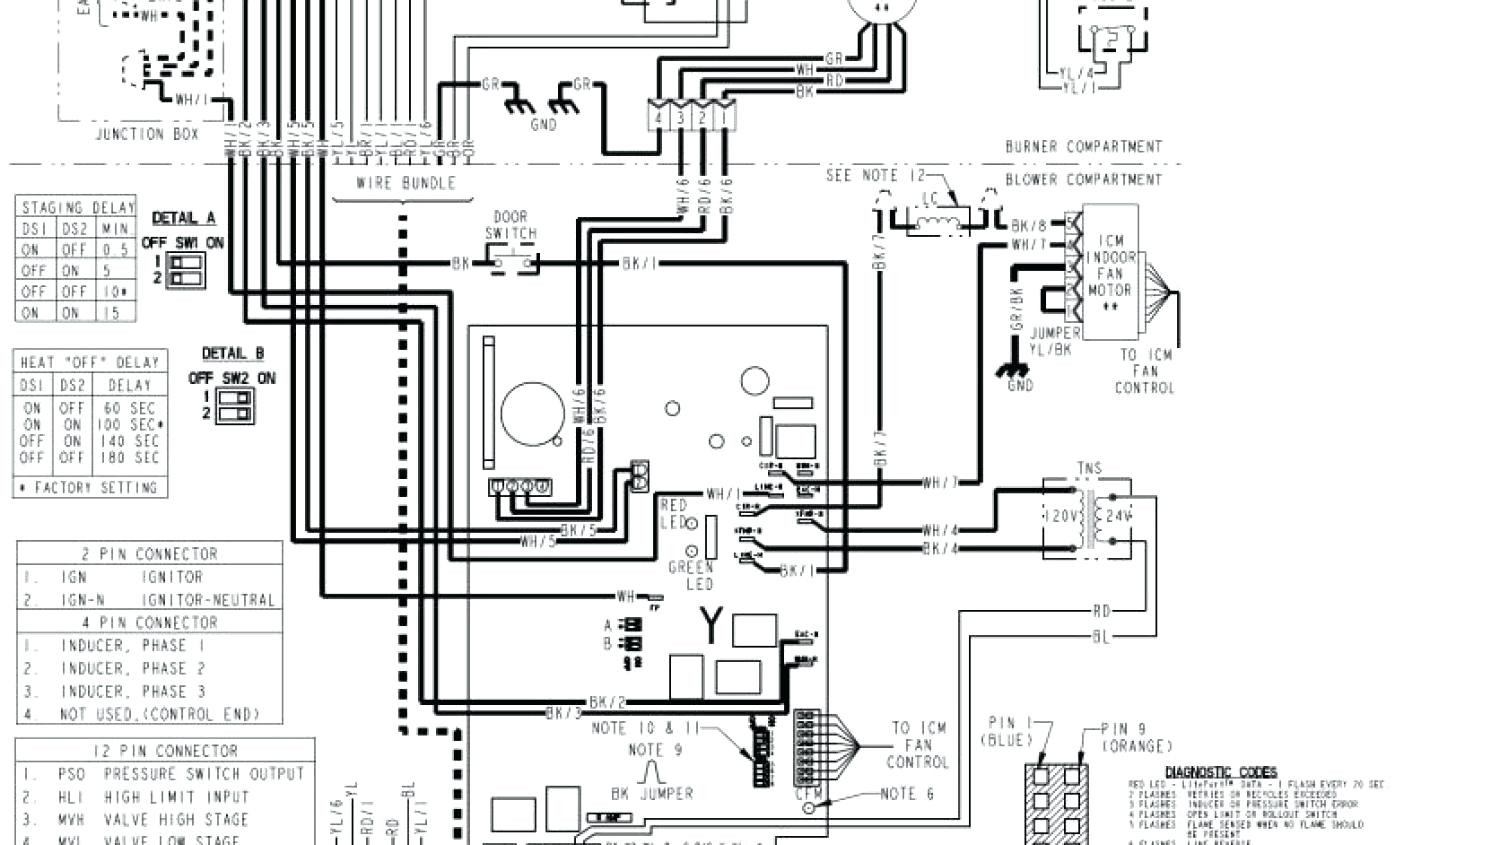 hight resolution of urgg rheem wiring diagrams wiring diagram rheem heat pump wiring urgg rheem wiring diagrams